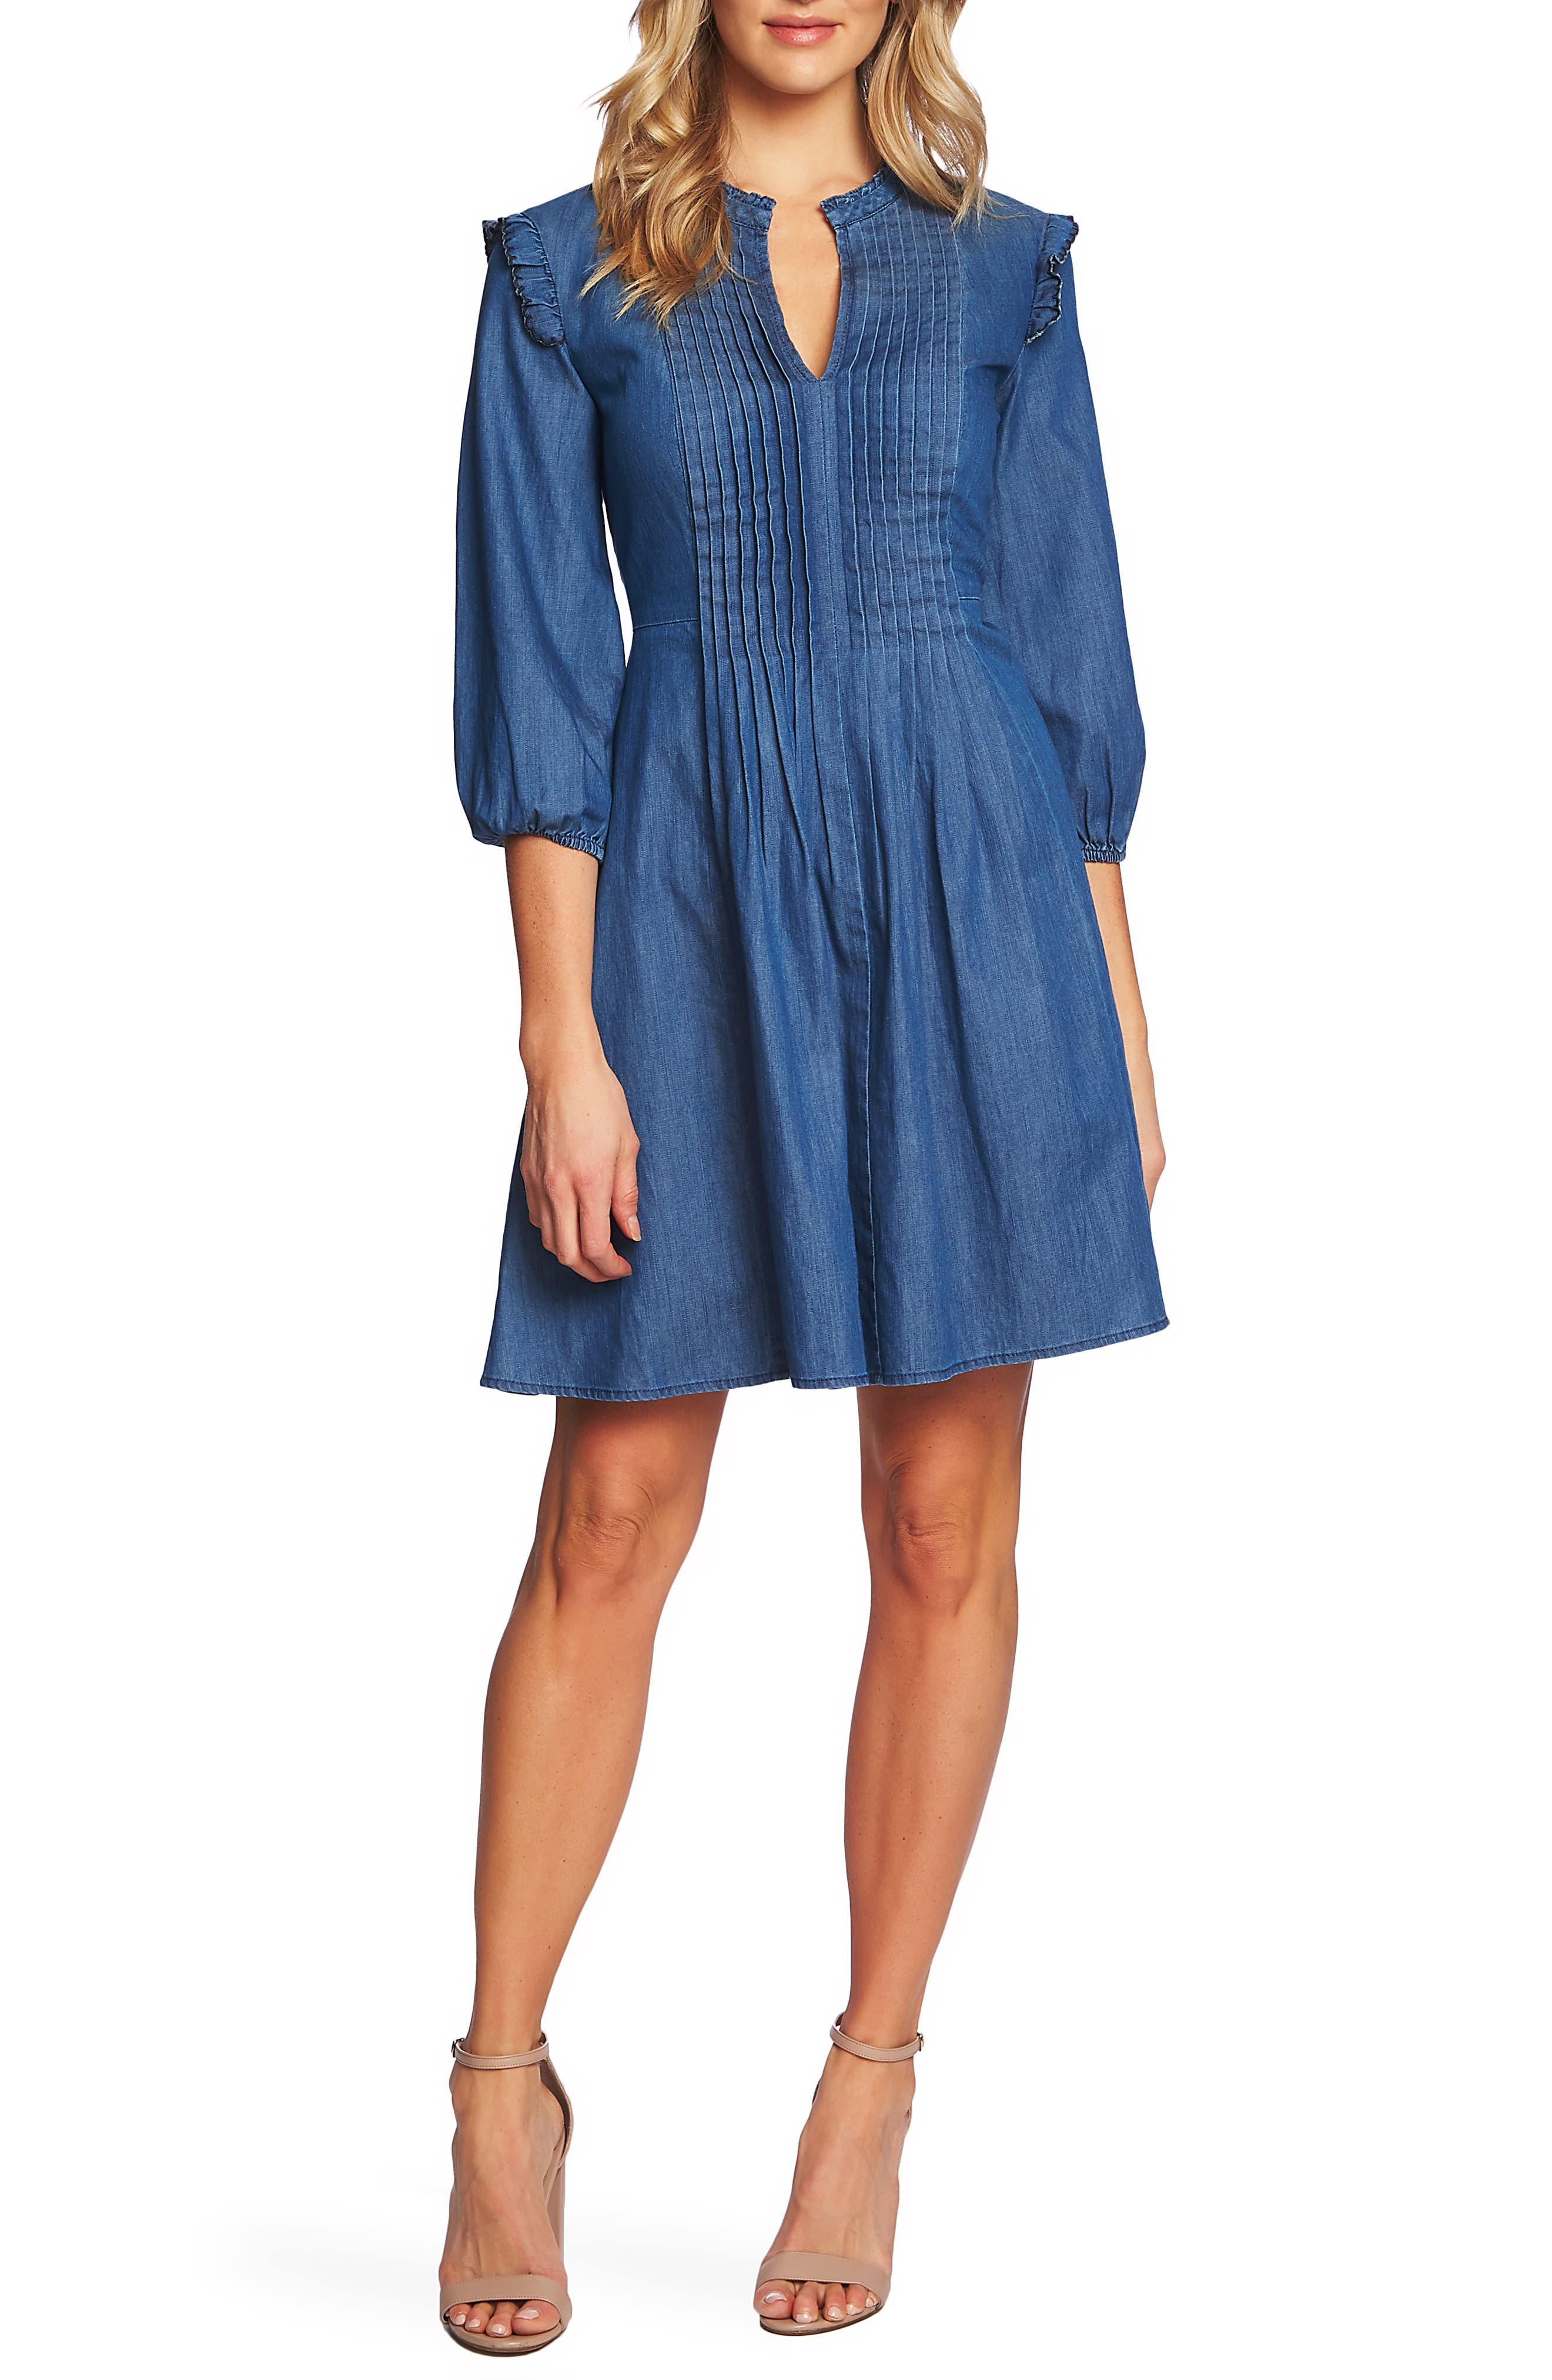 Cece Pintuck Ruffle Denim Dress, Blue